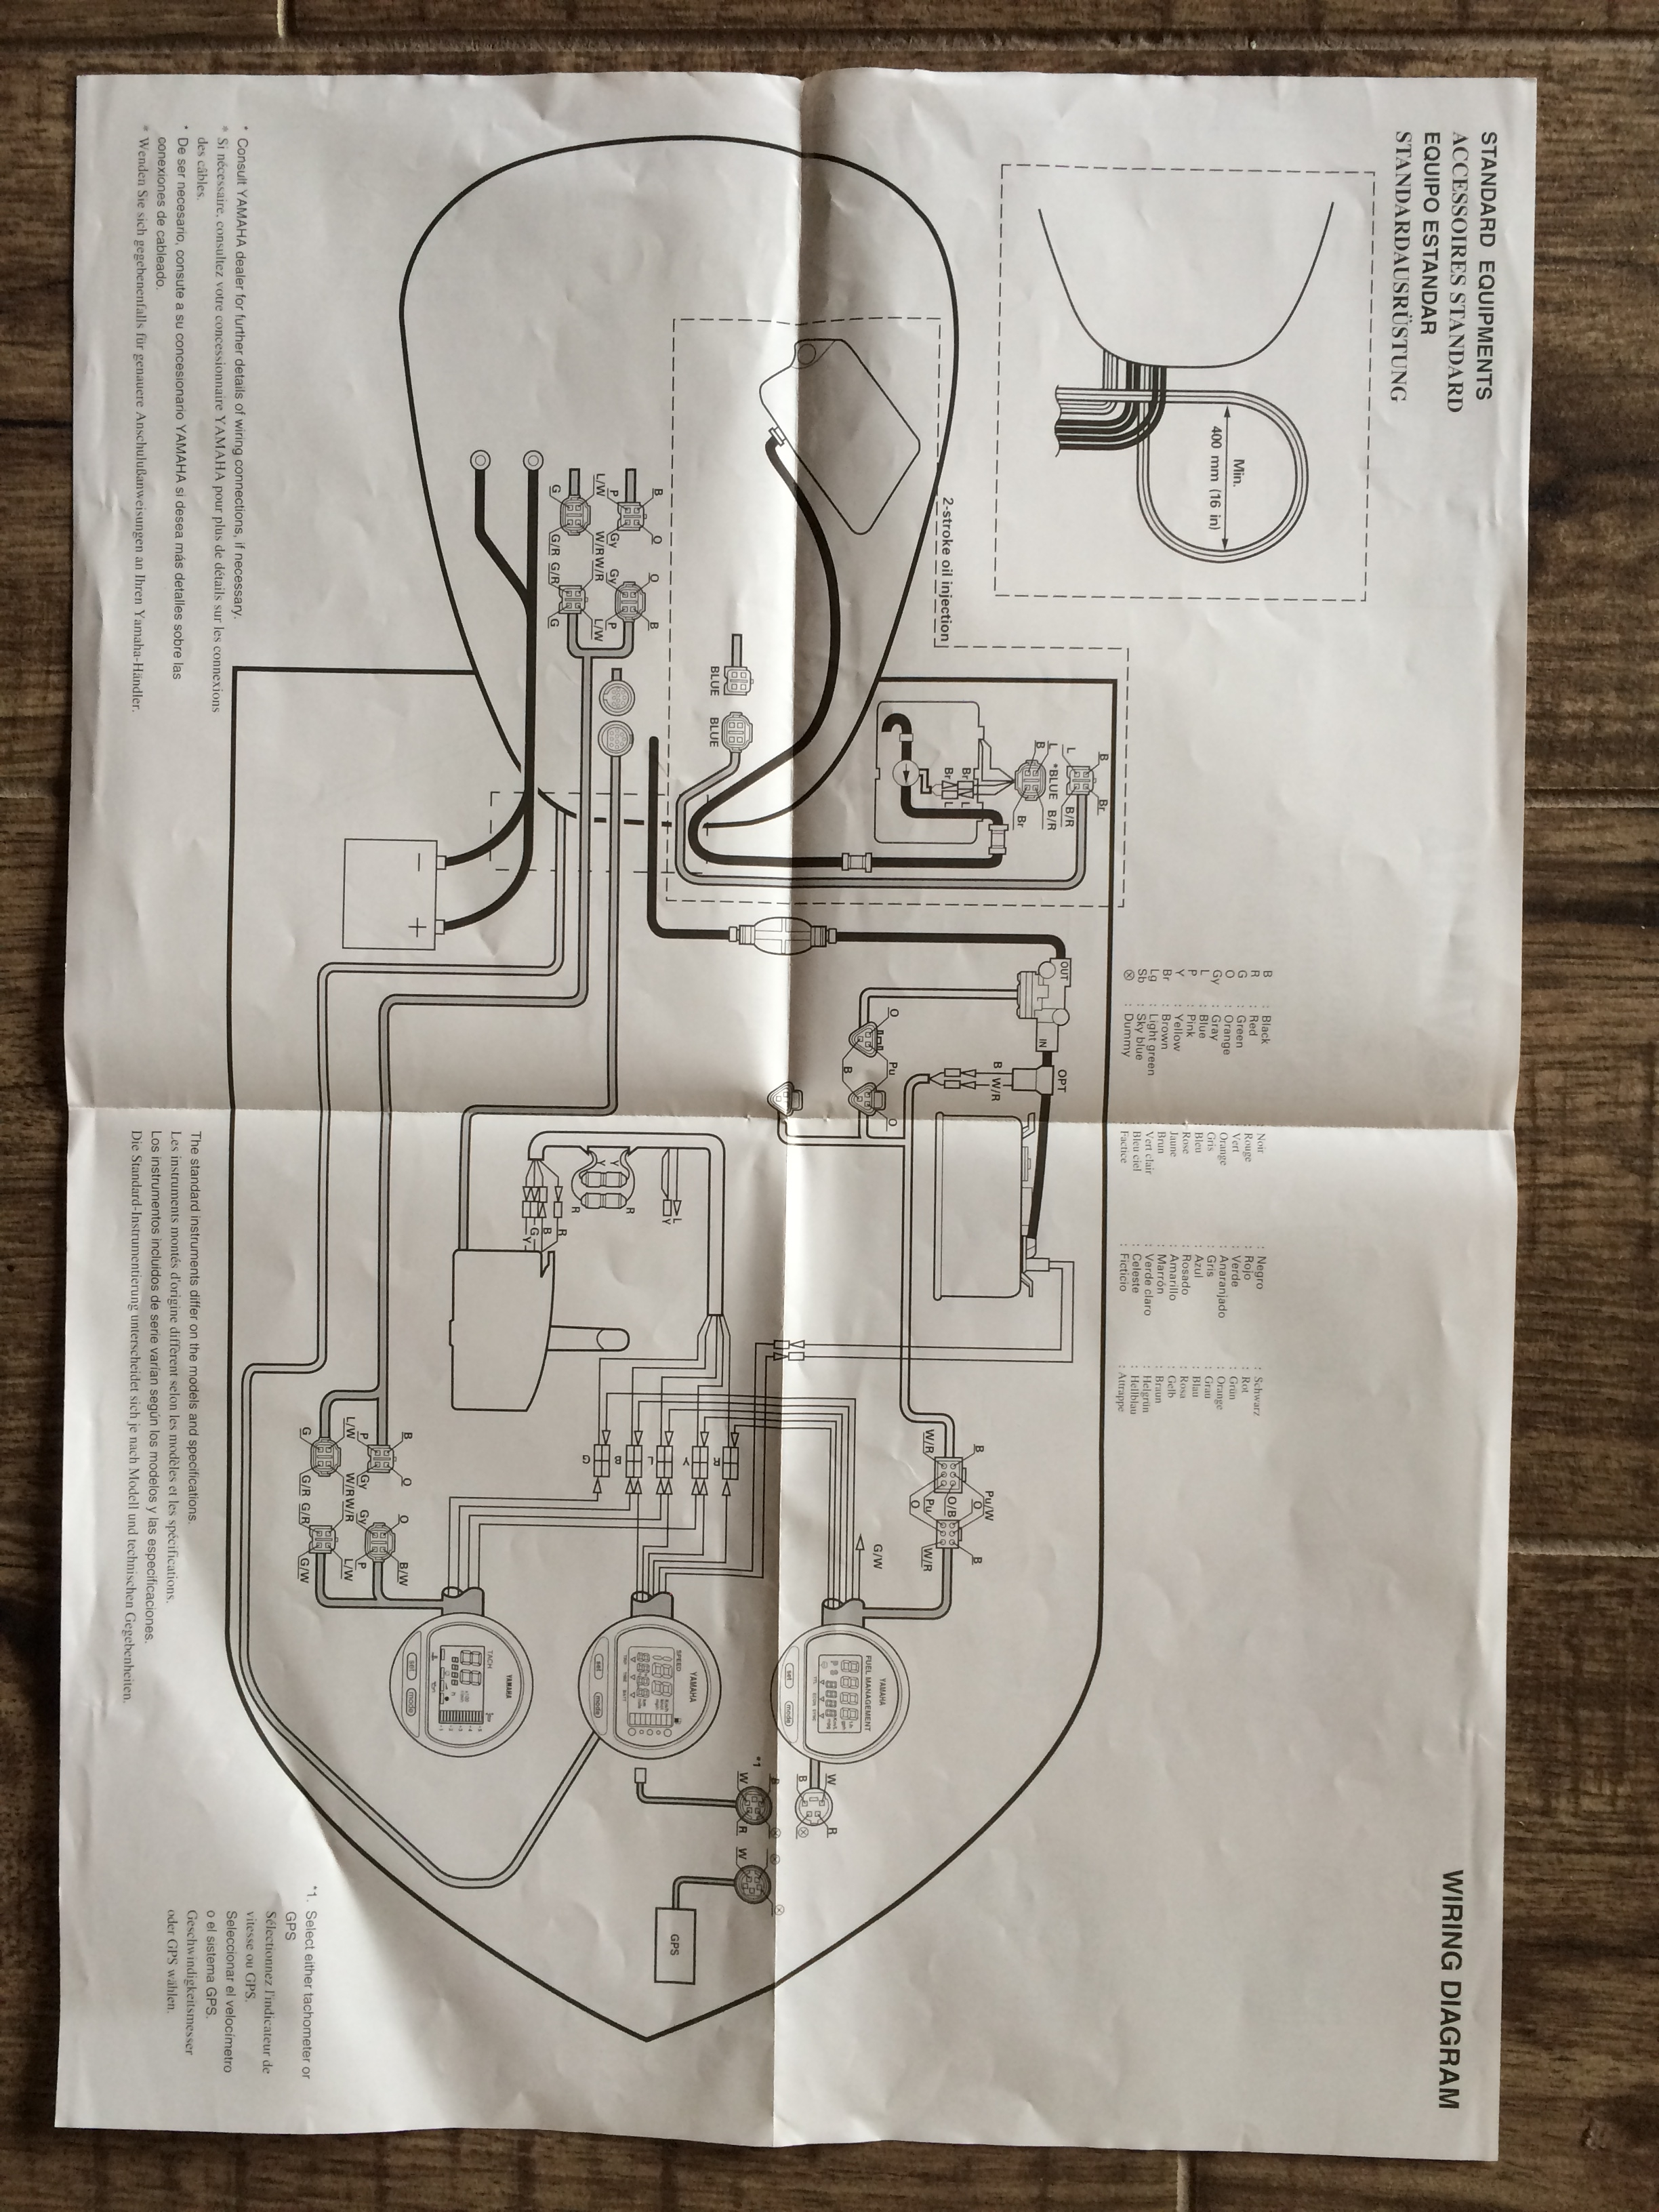 Hurricane Deck Boat Wiring Diagram Auto Electrical 201 Diagrams For A 2004 Fd Gs Does